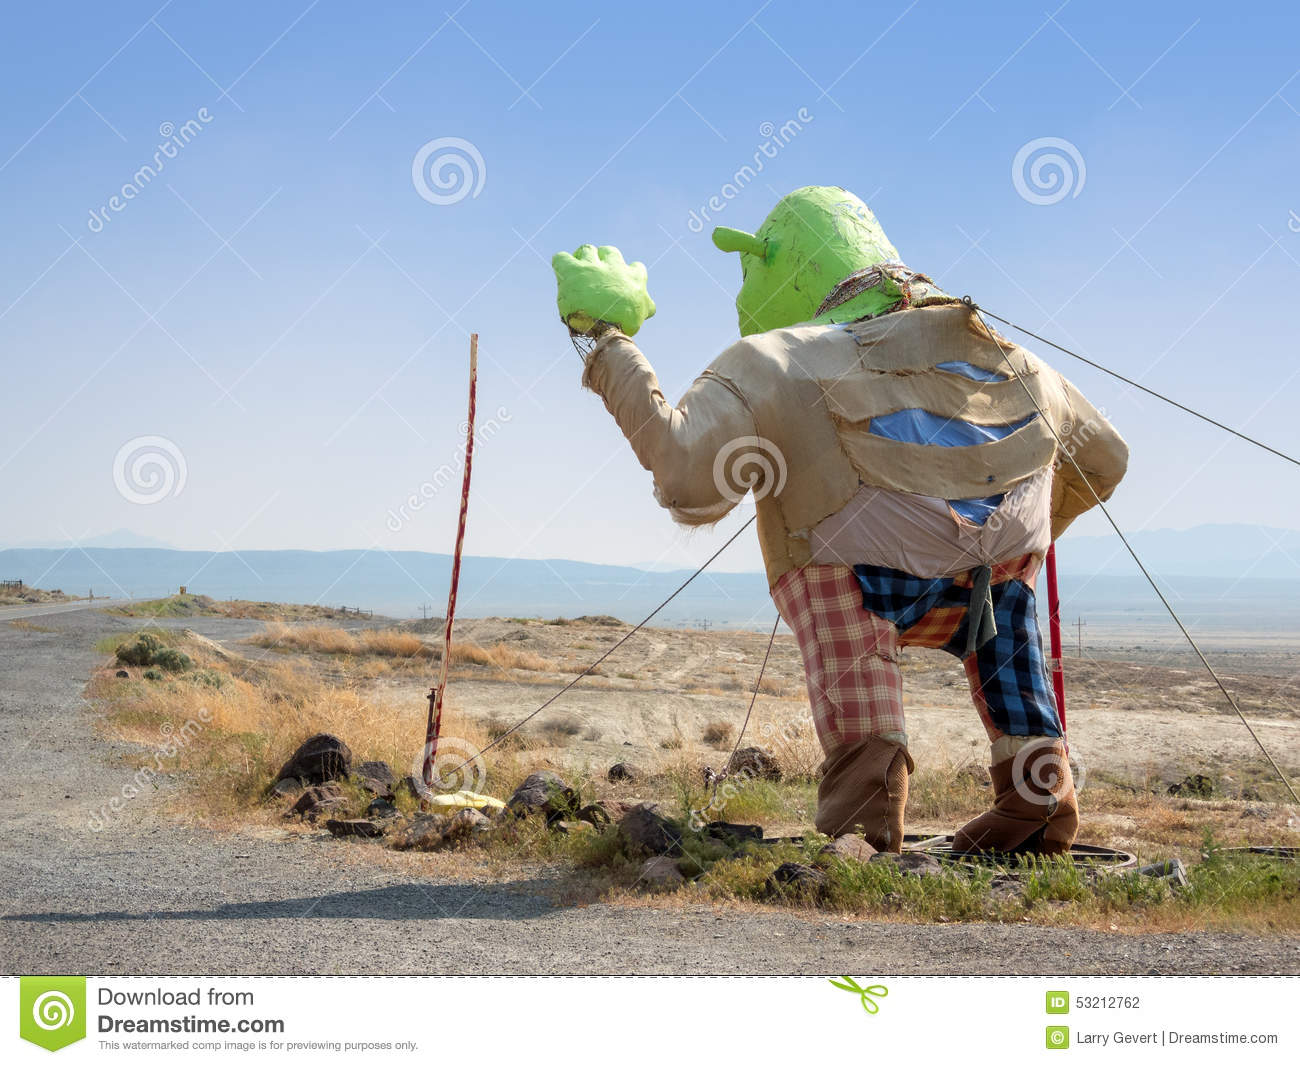 Image of: Dune Shrek Waves To Desert Travelers Dreamstimecom Shrek In The Desert Editorial Photography Image Of Craft 53212762